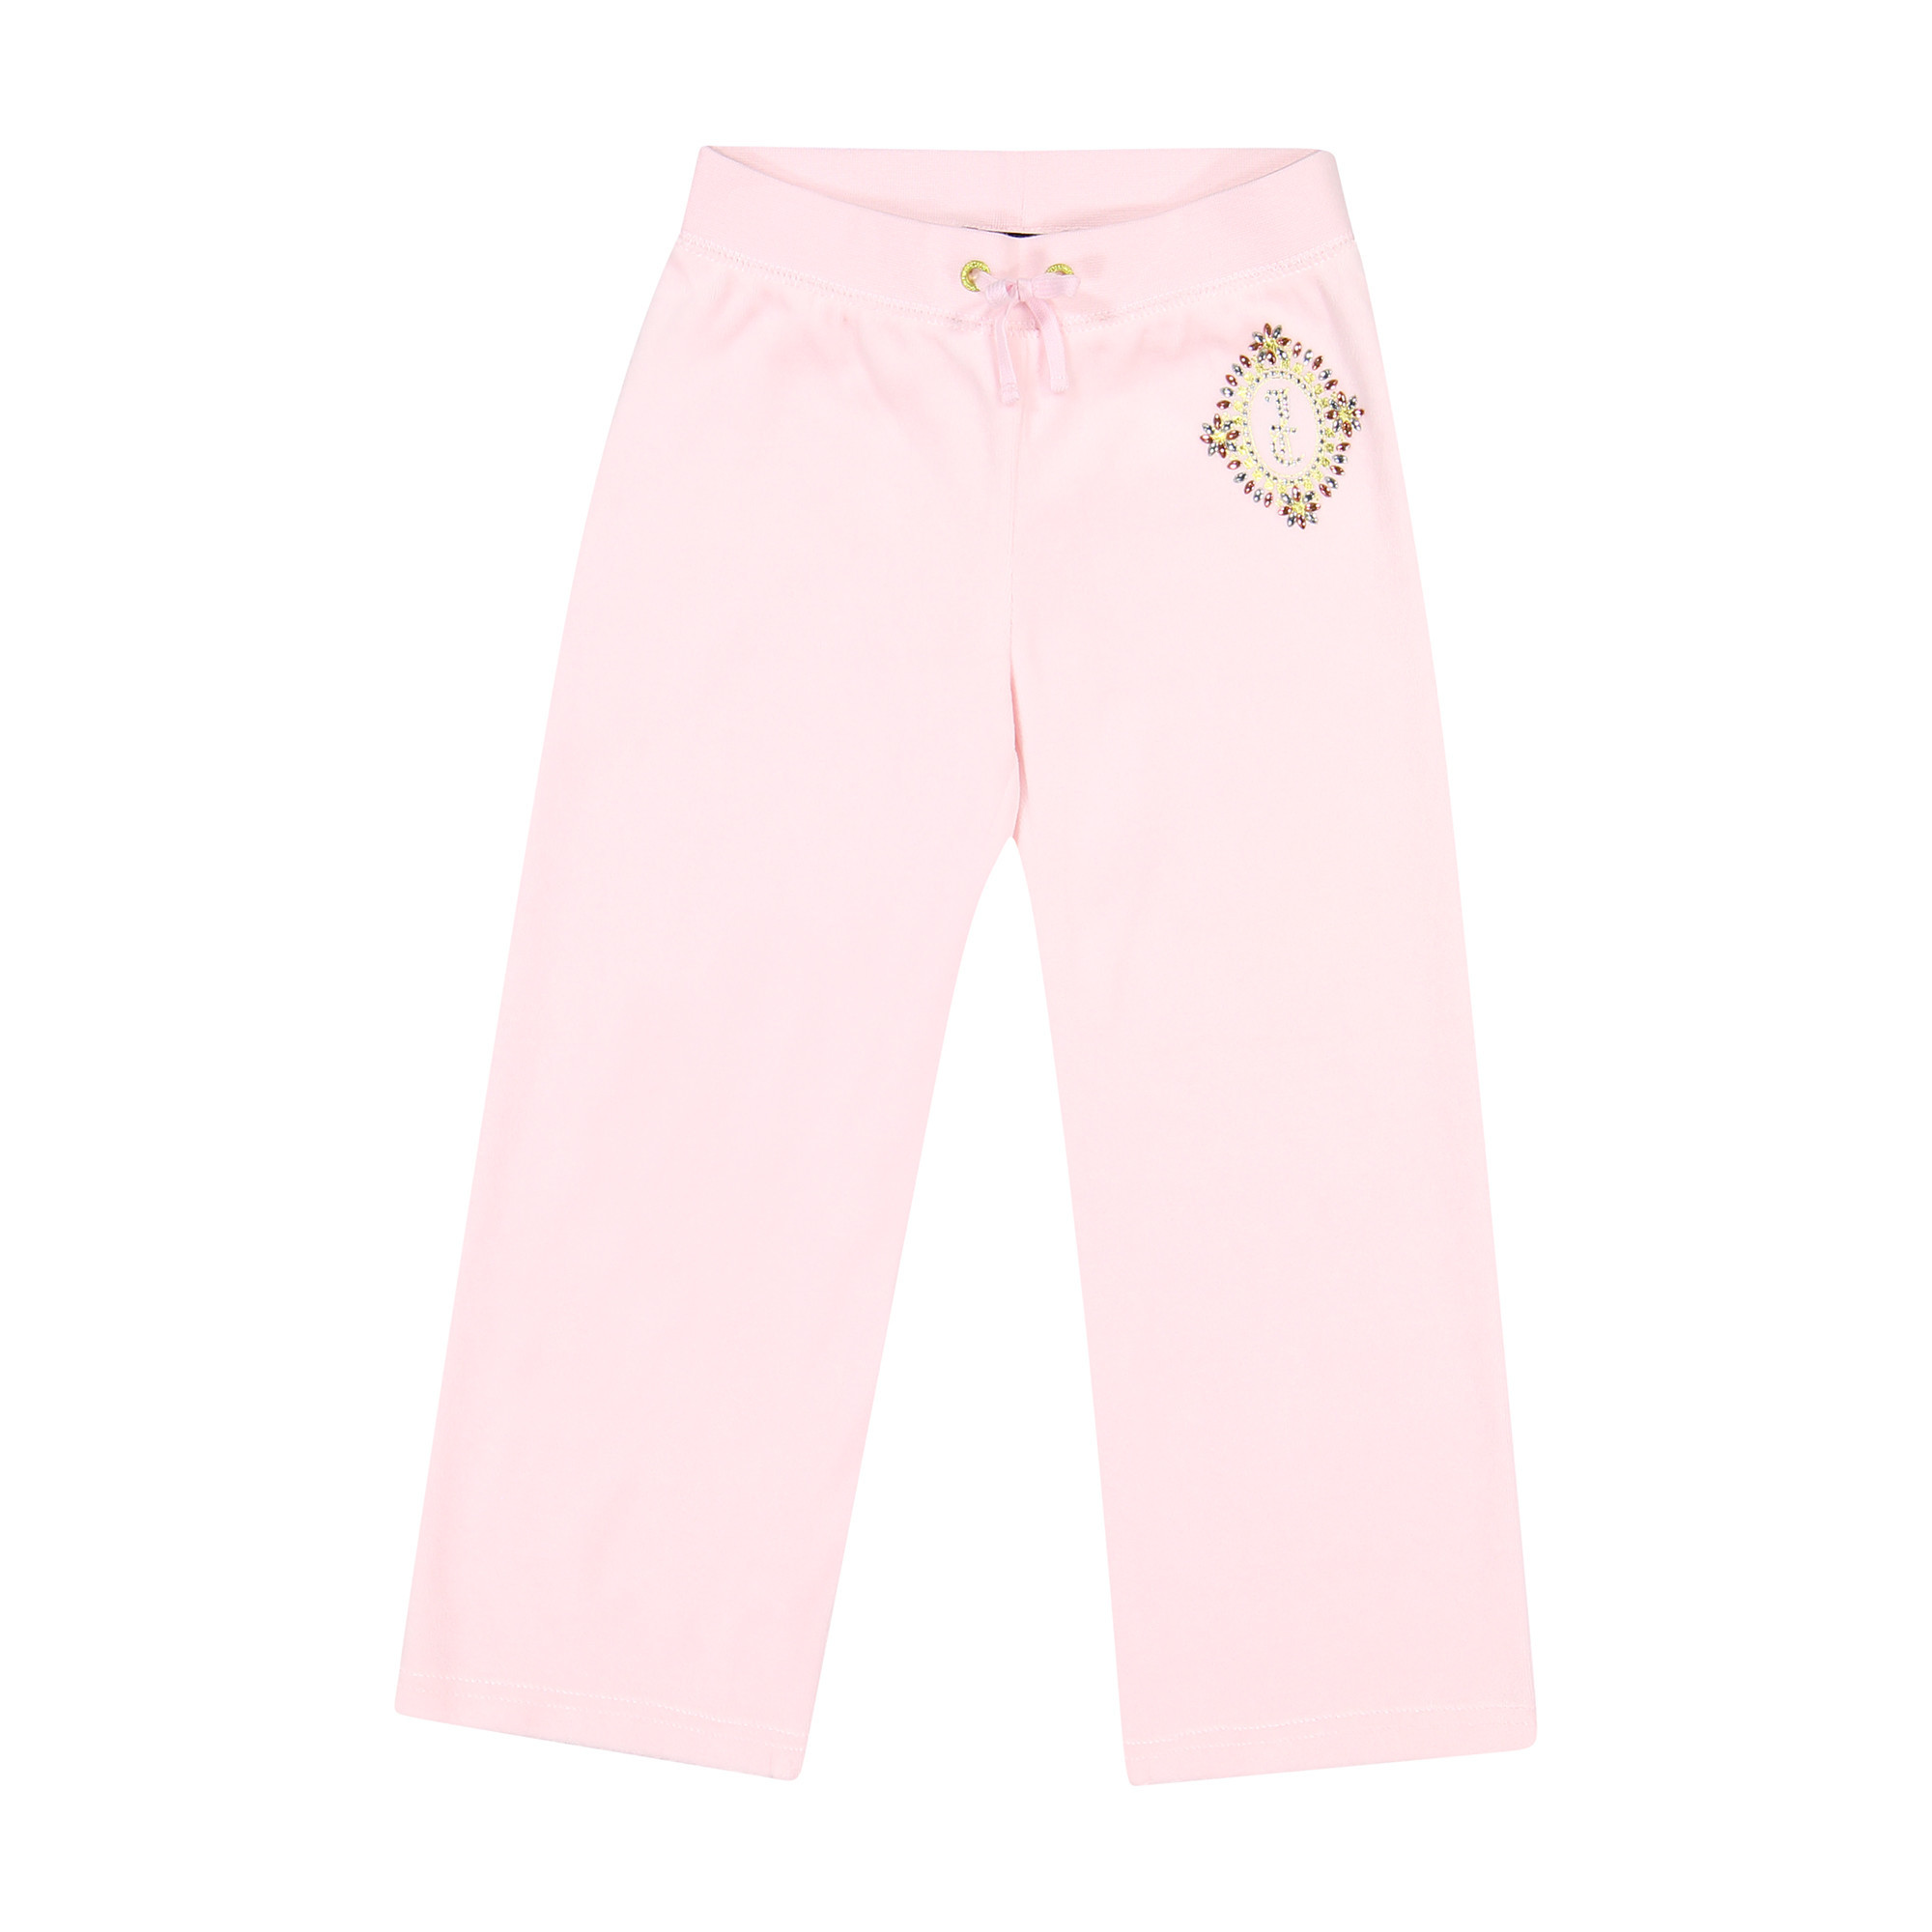 Juicy Couture Girls Velour Tracksuit Pants In Pink With Gold Jc Logo For Girls Bambinifashion Com